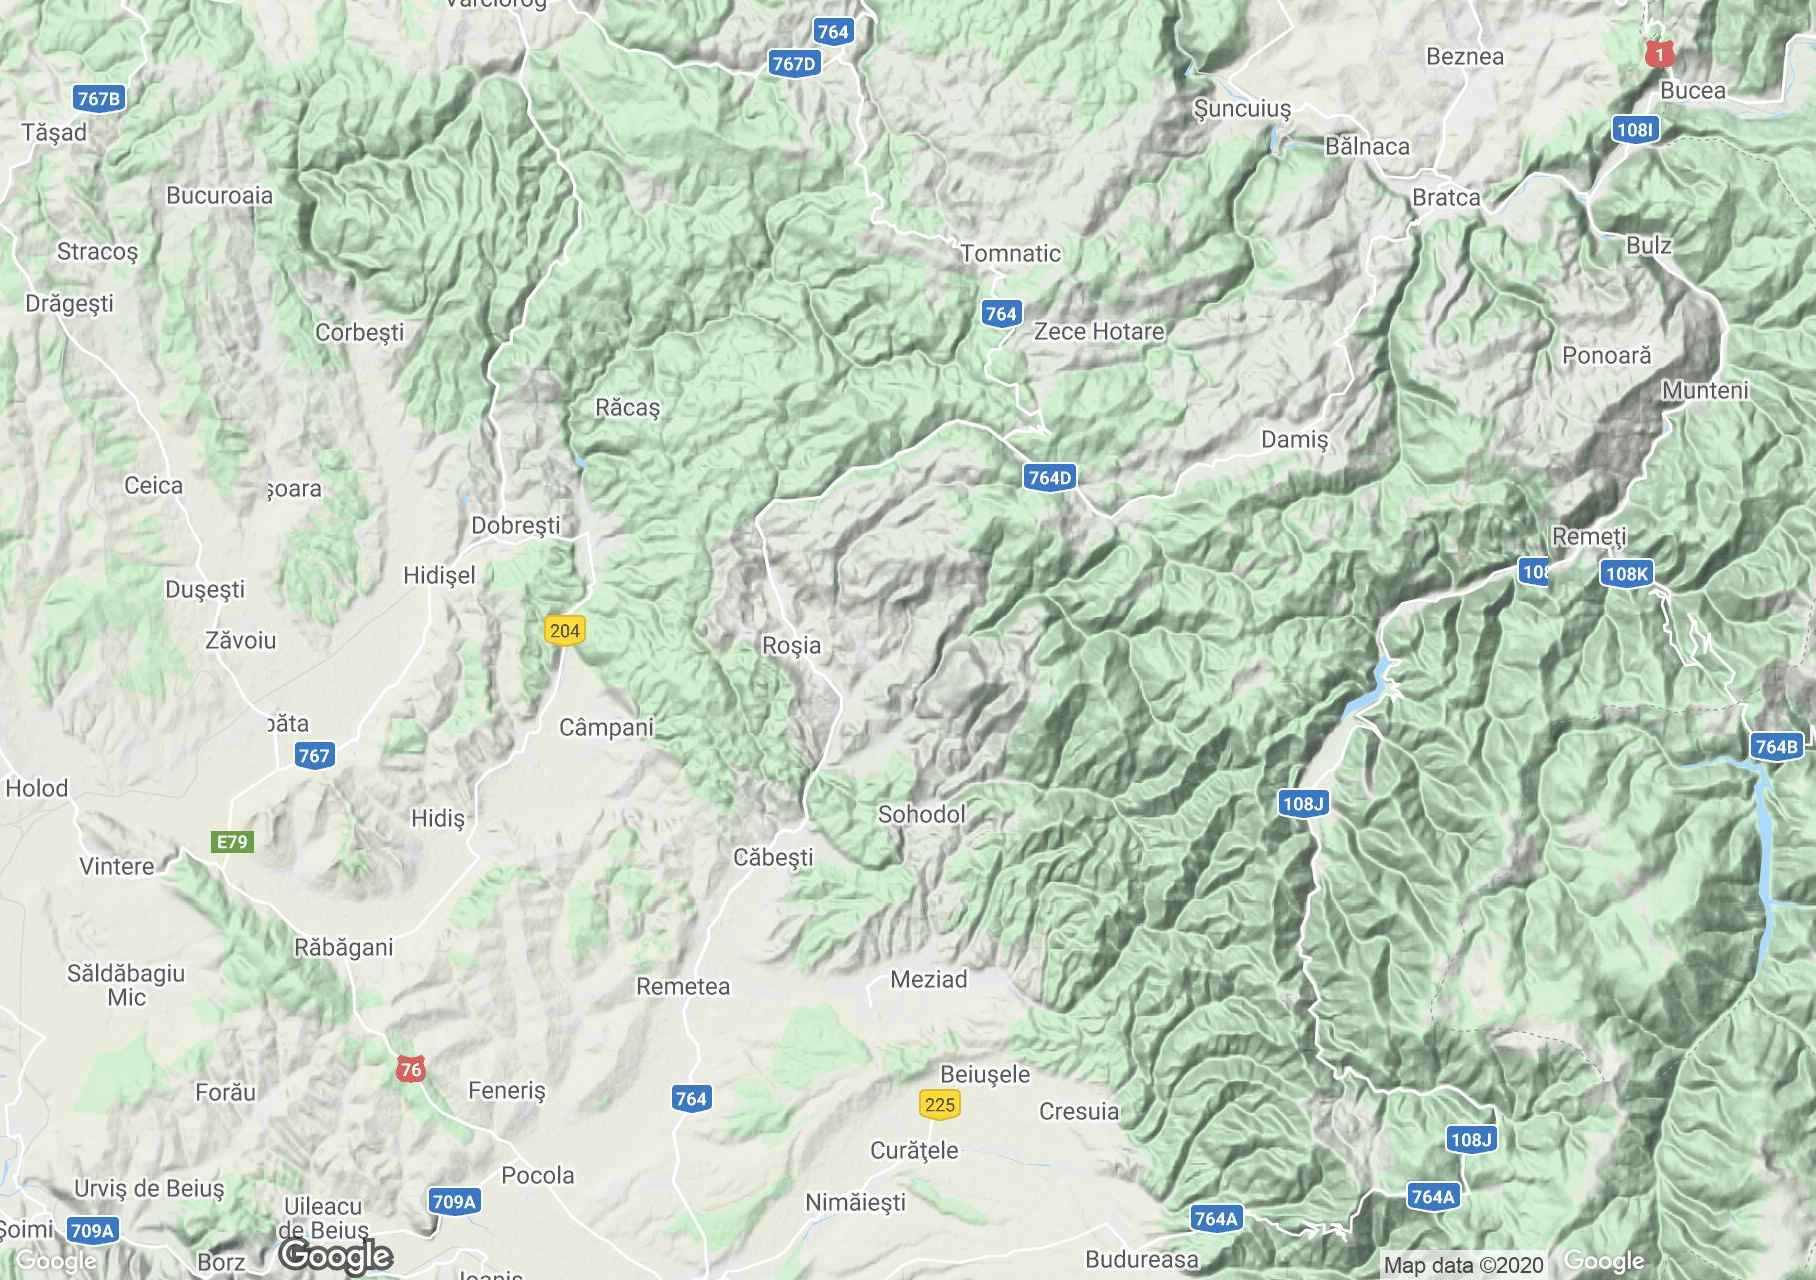 Pădurea Craiului Mountains: Roşia area, Interactive tourist map